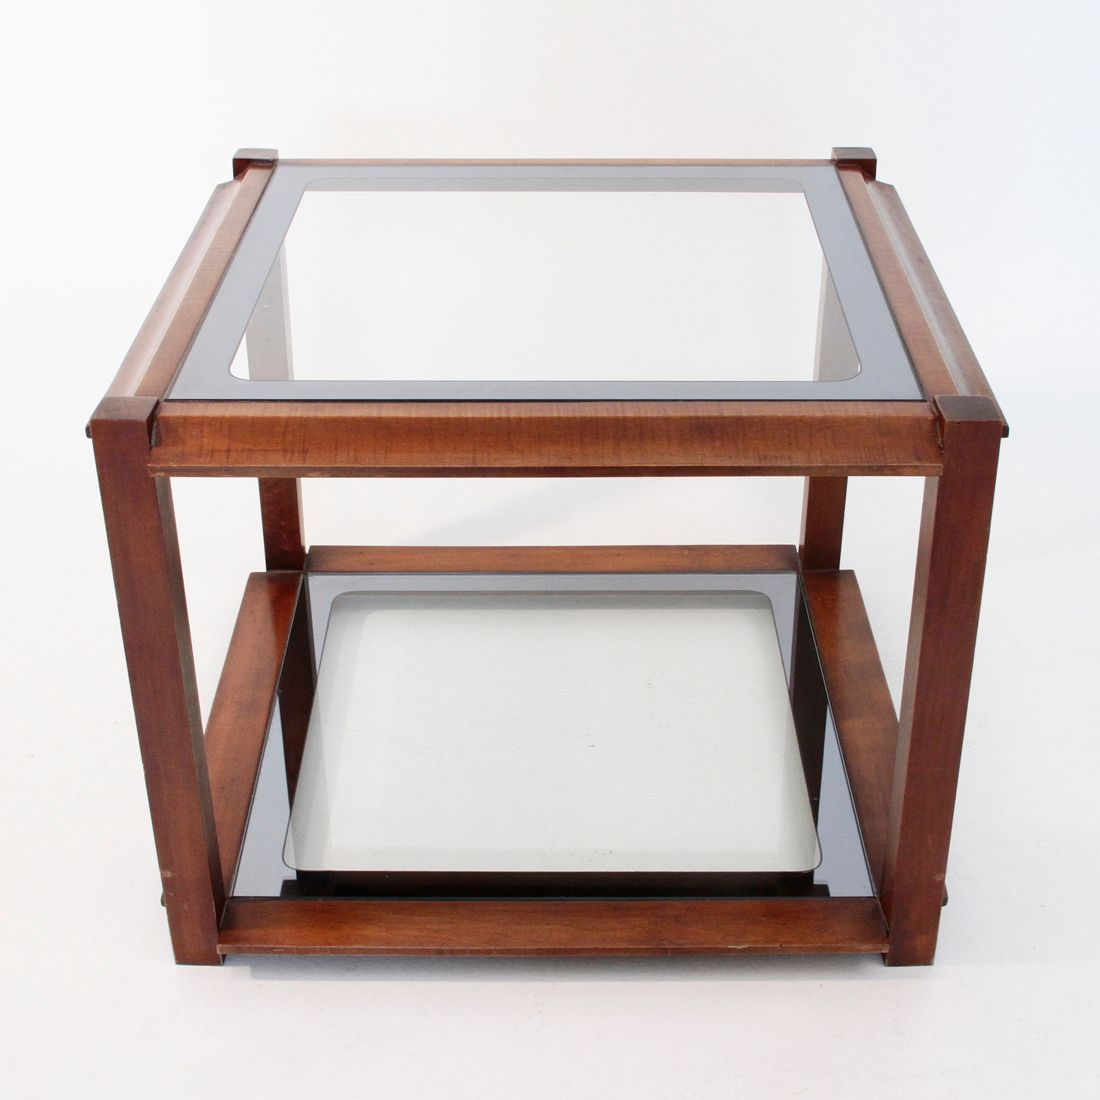 Italian Square Wooden Coffee Table For Sale At Pamono